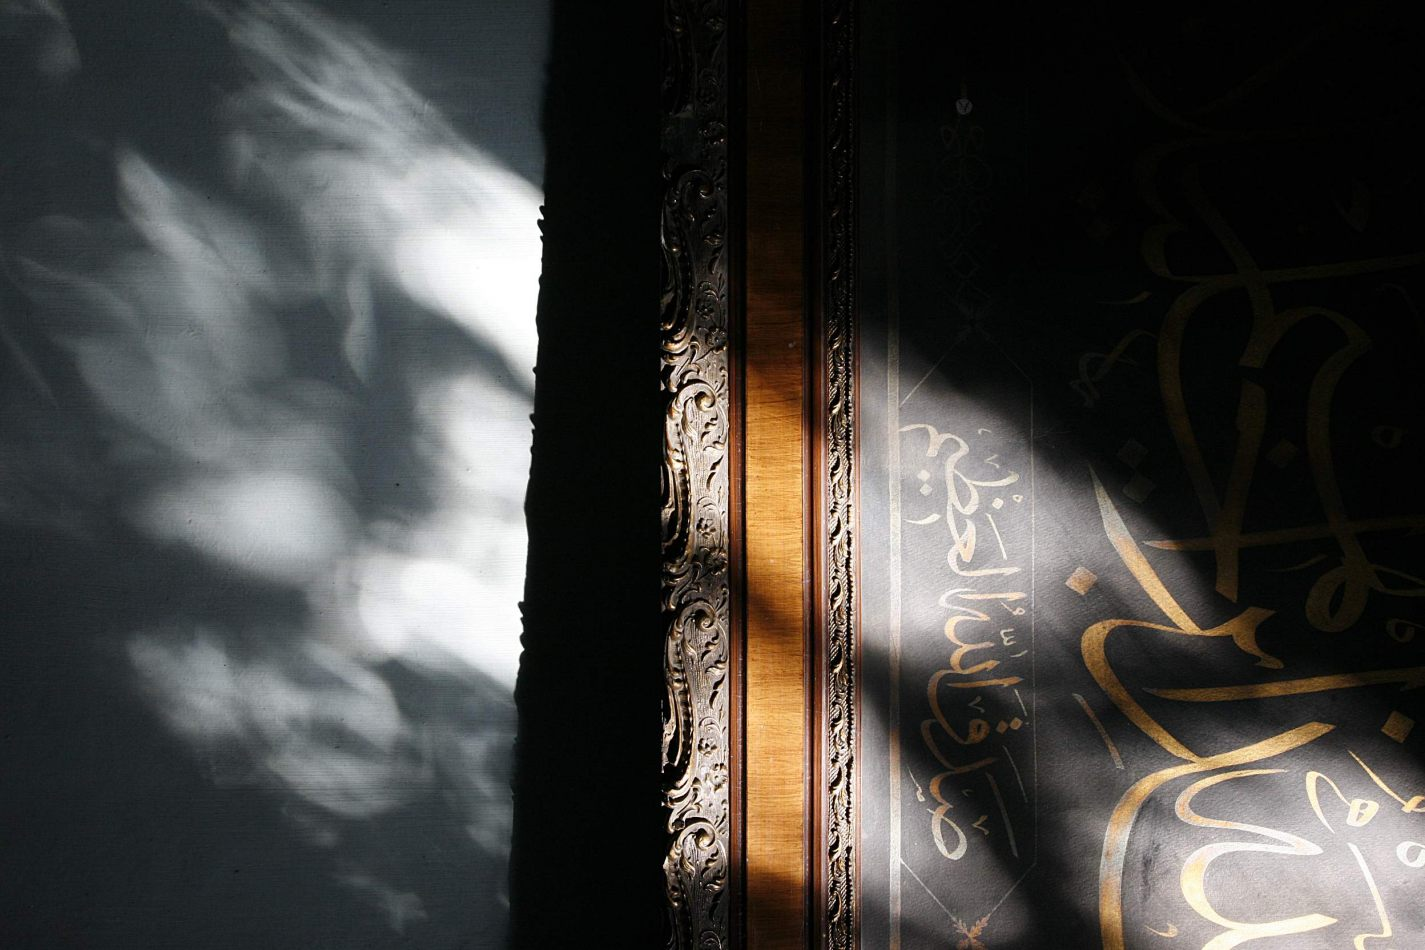 Anthony Ellis Photography: Shadows and Steps - Light Swirls over Sacred Letters